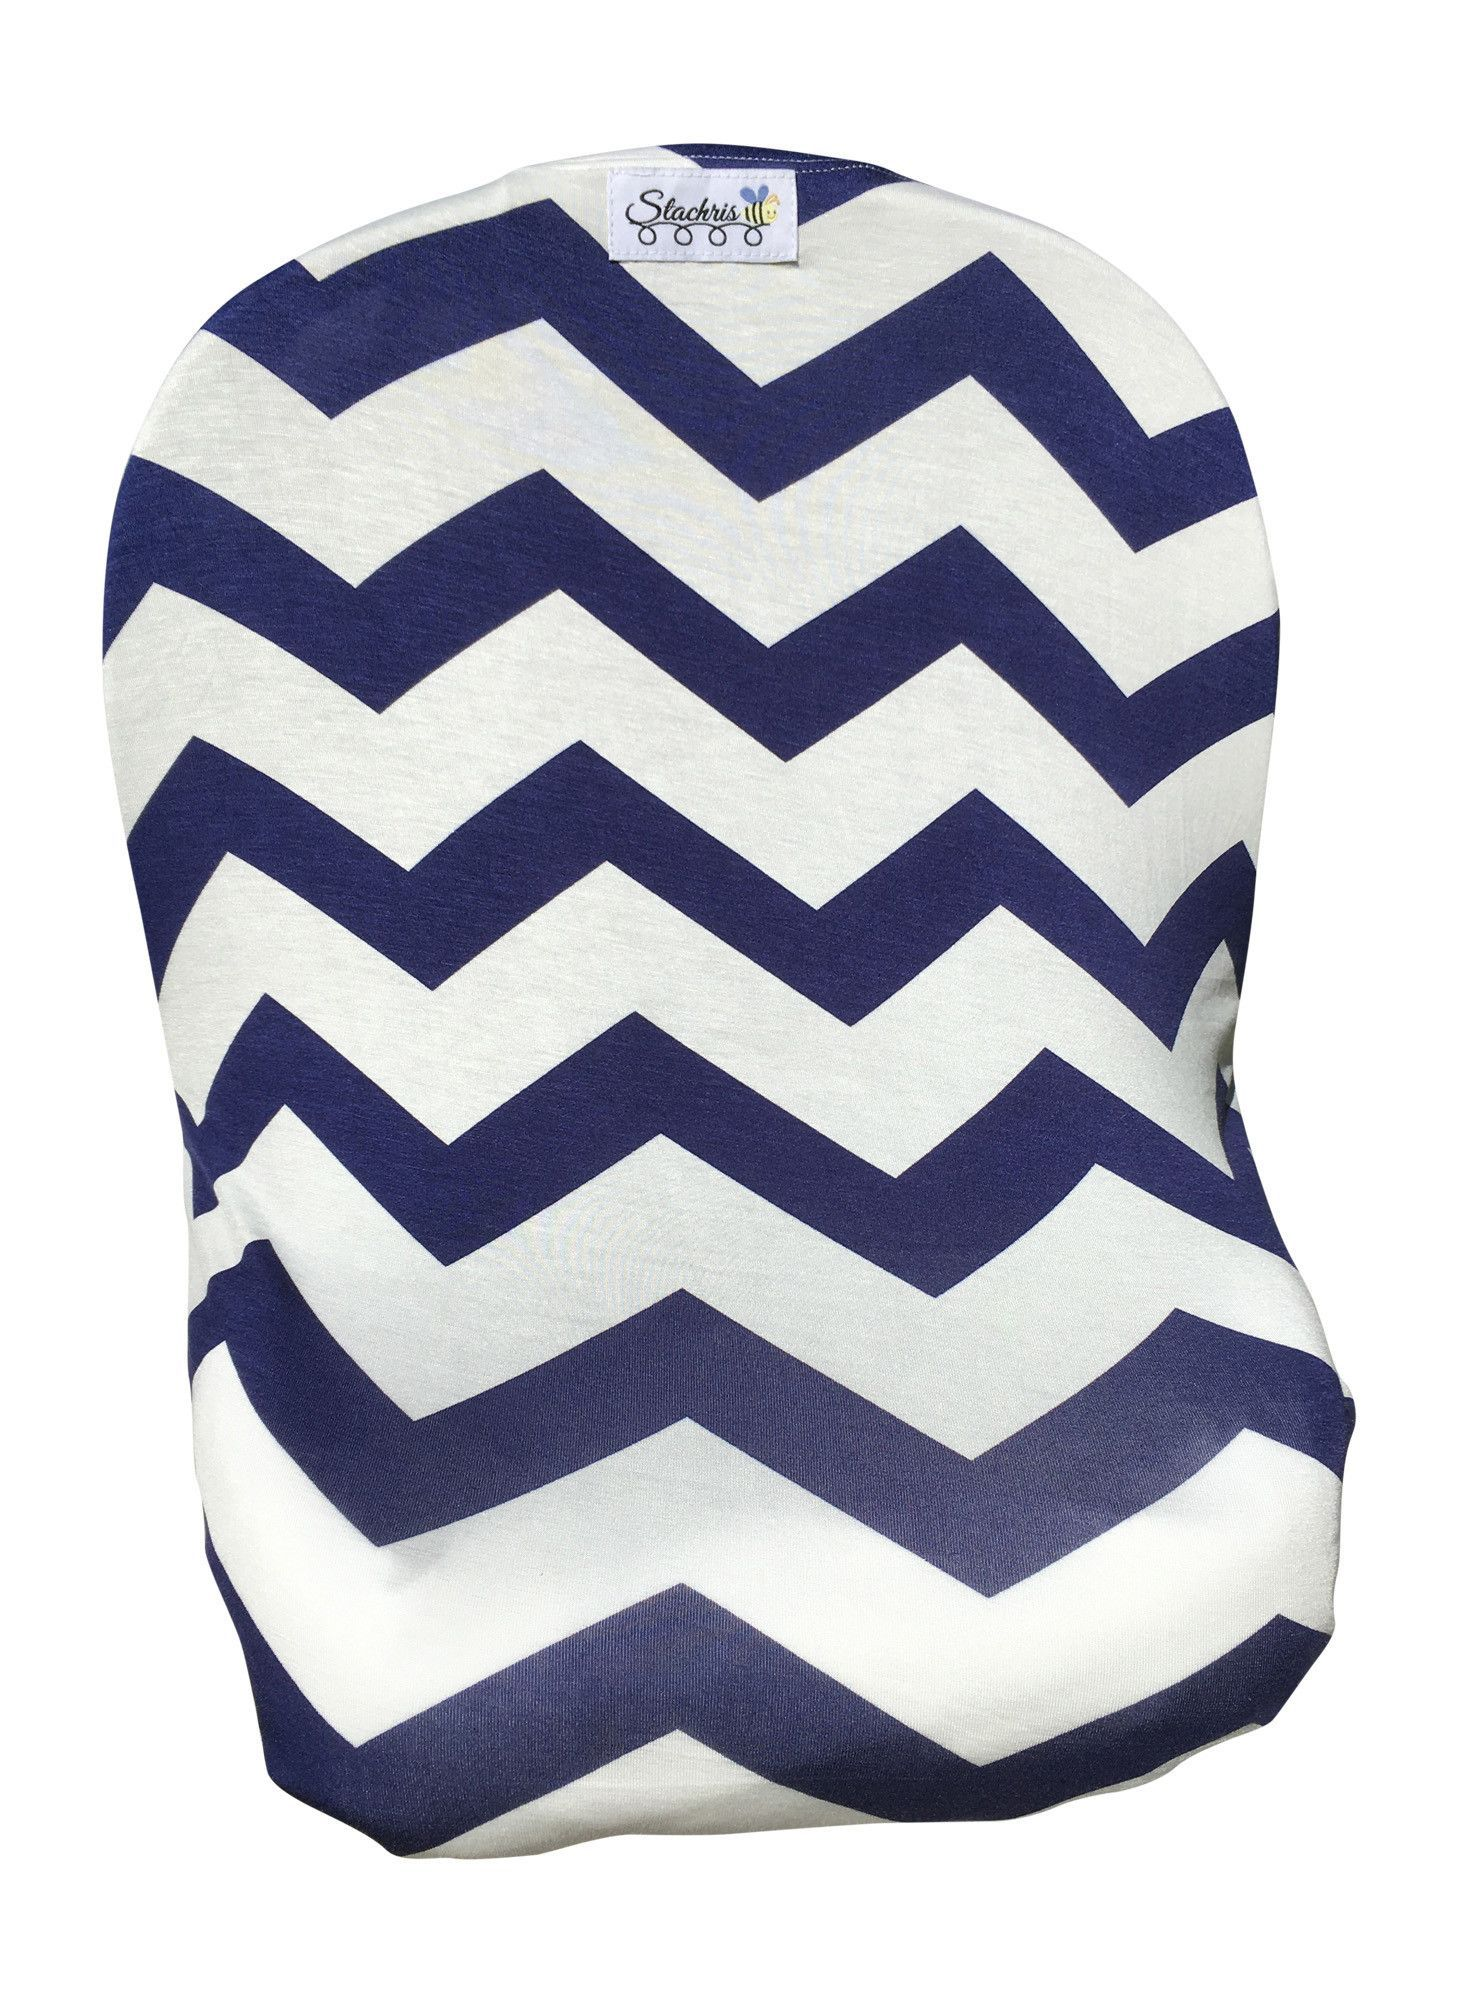 Blue Chevron Infant Baby Car Seat Cover, High Chair